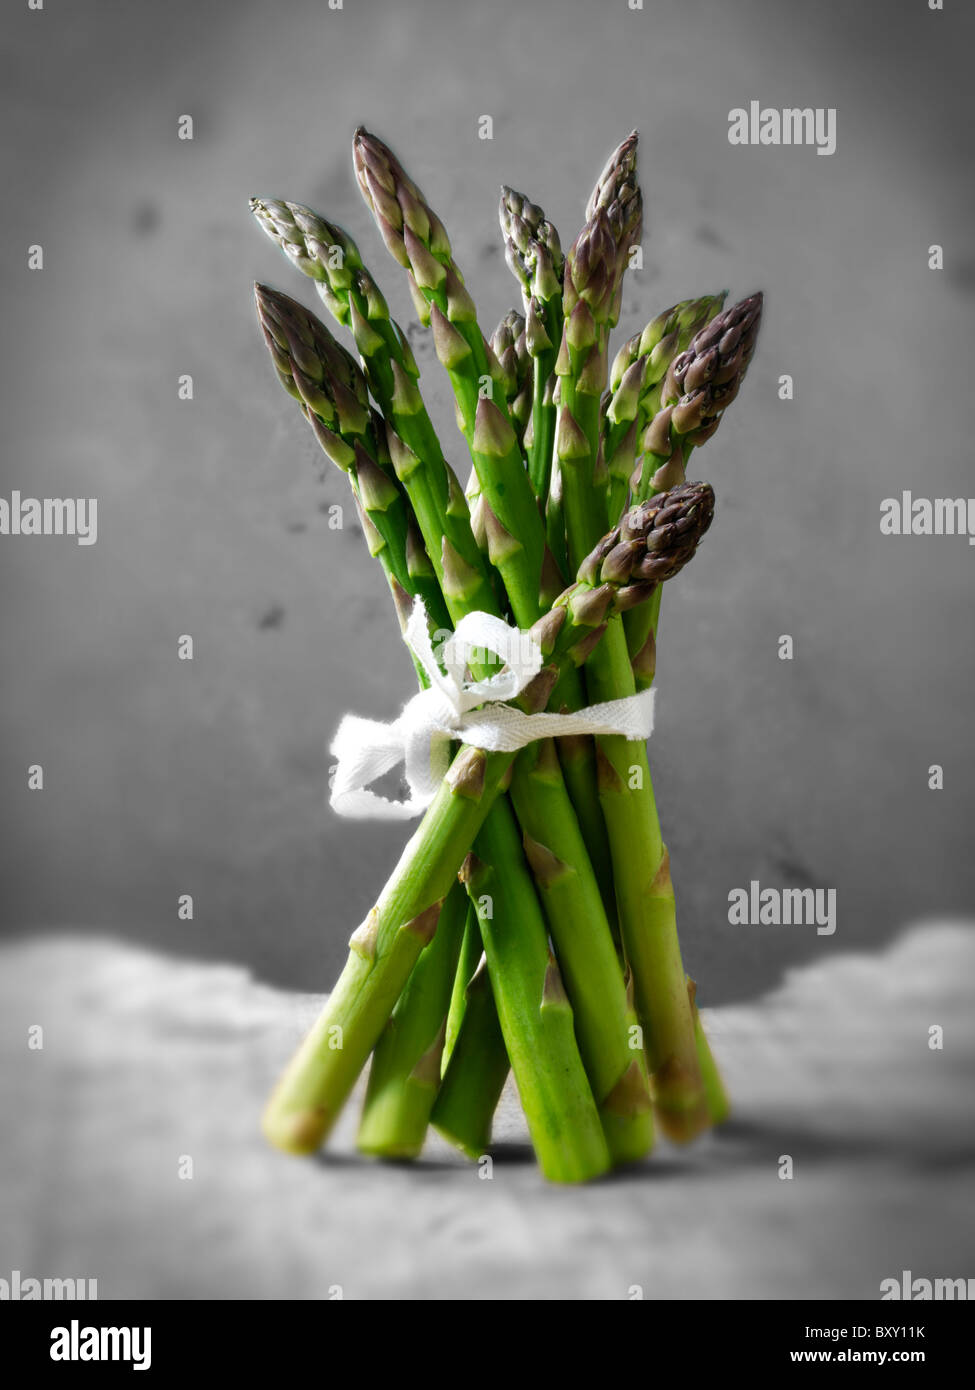 Bunch of fresh asparagus spears - Stock Image